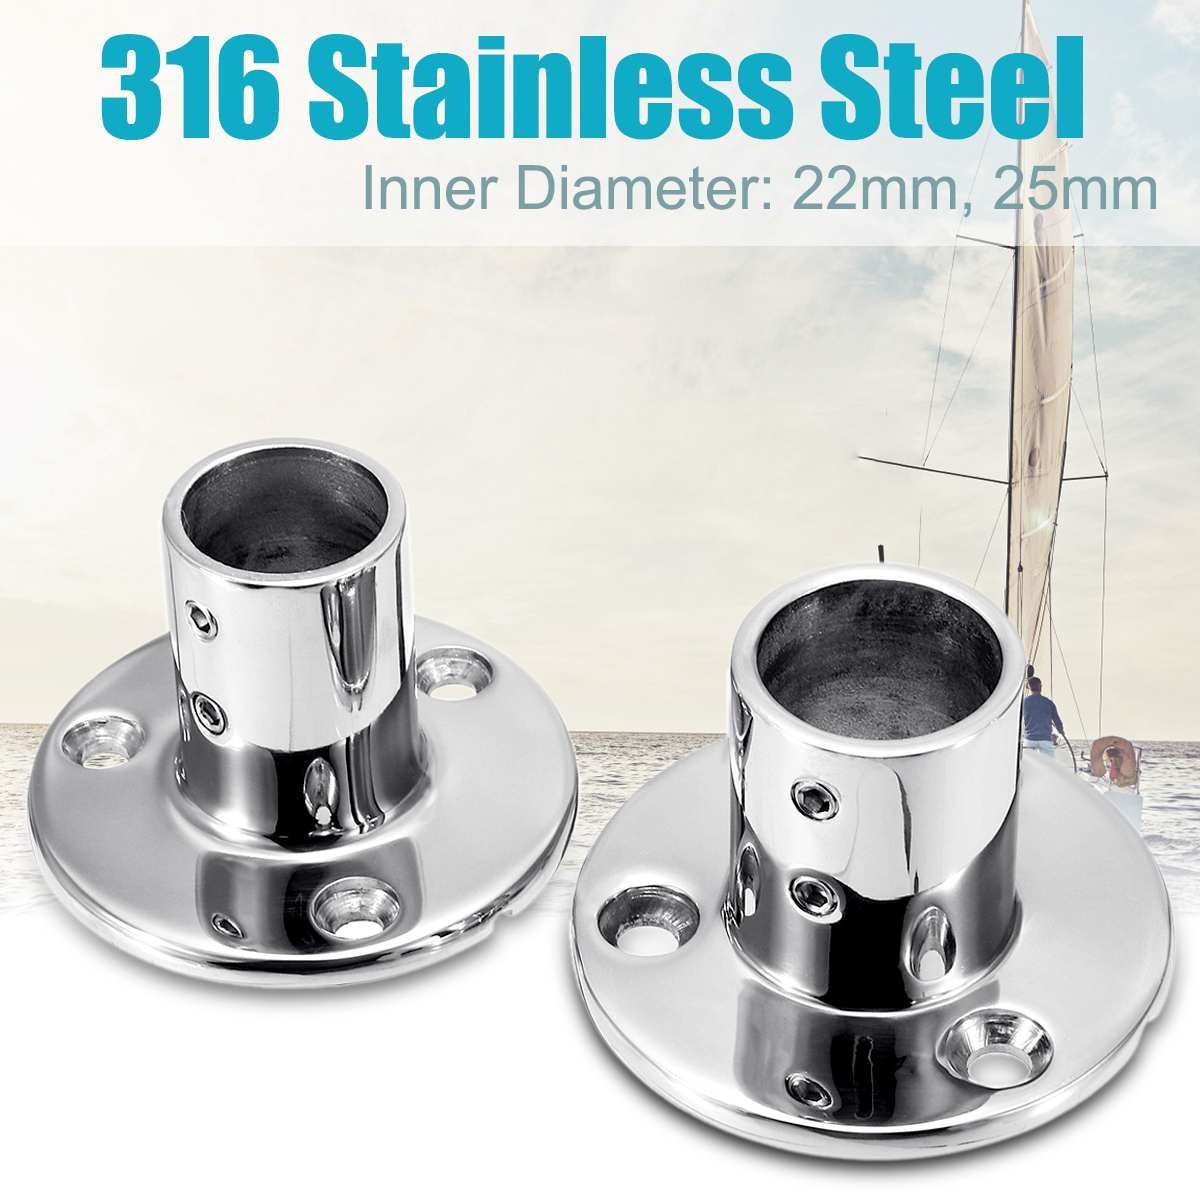 316 Stainless Steel Boat Tube Pipe Base Marine 90° Railing Handrail Pipe Base Fitting Support Durable Reusable Marine Hardware